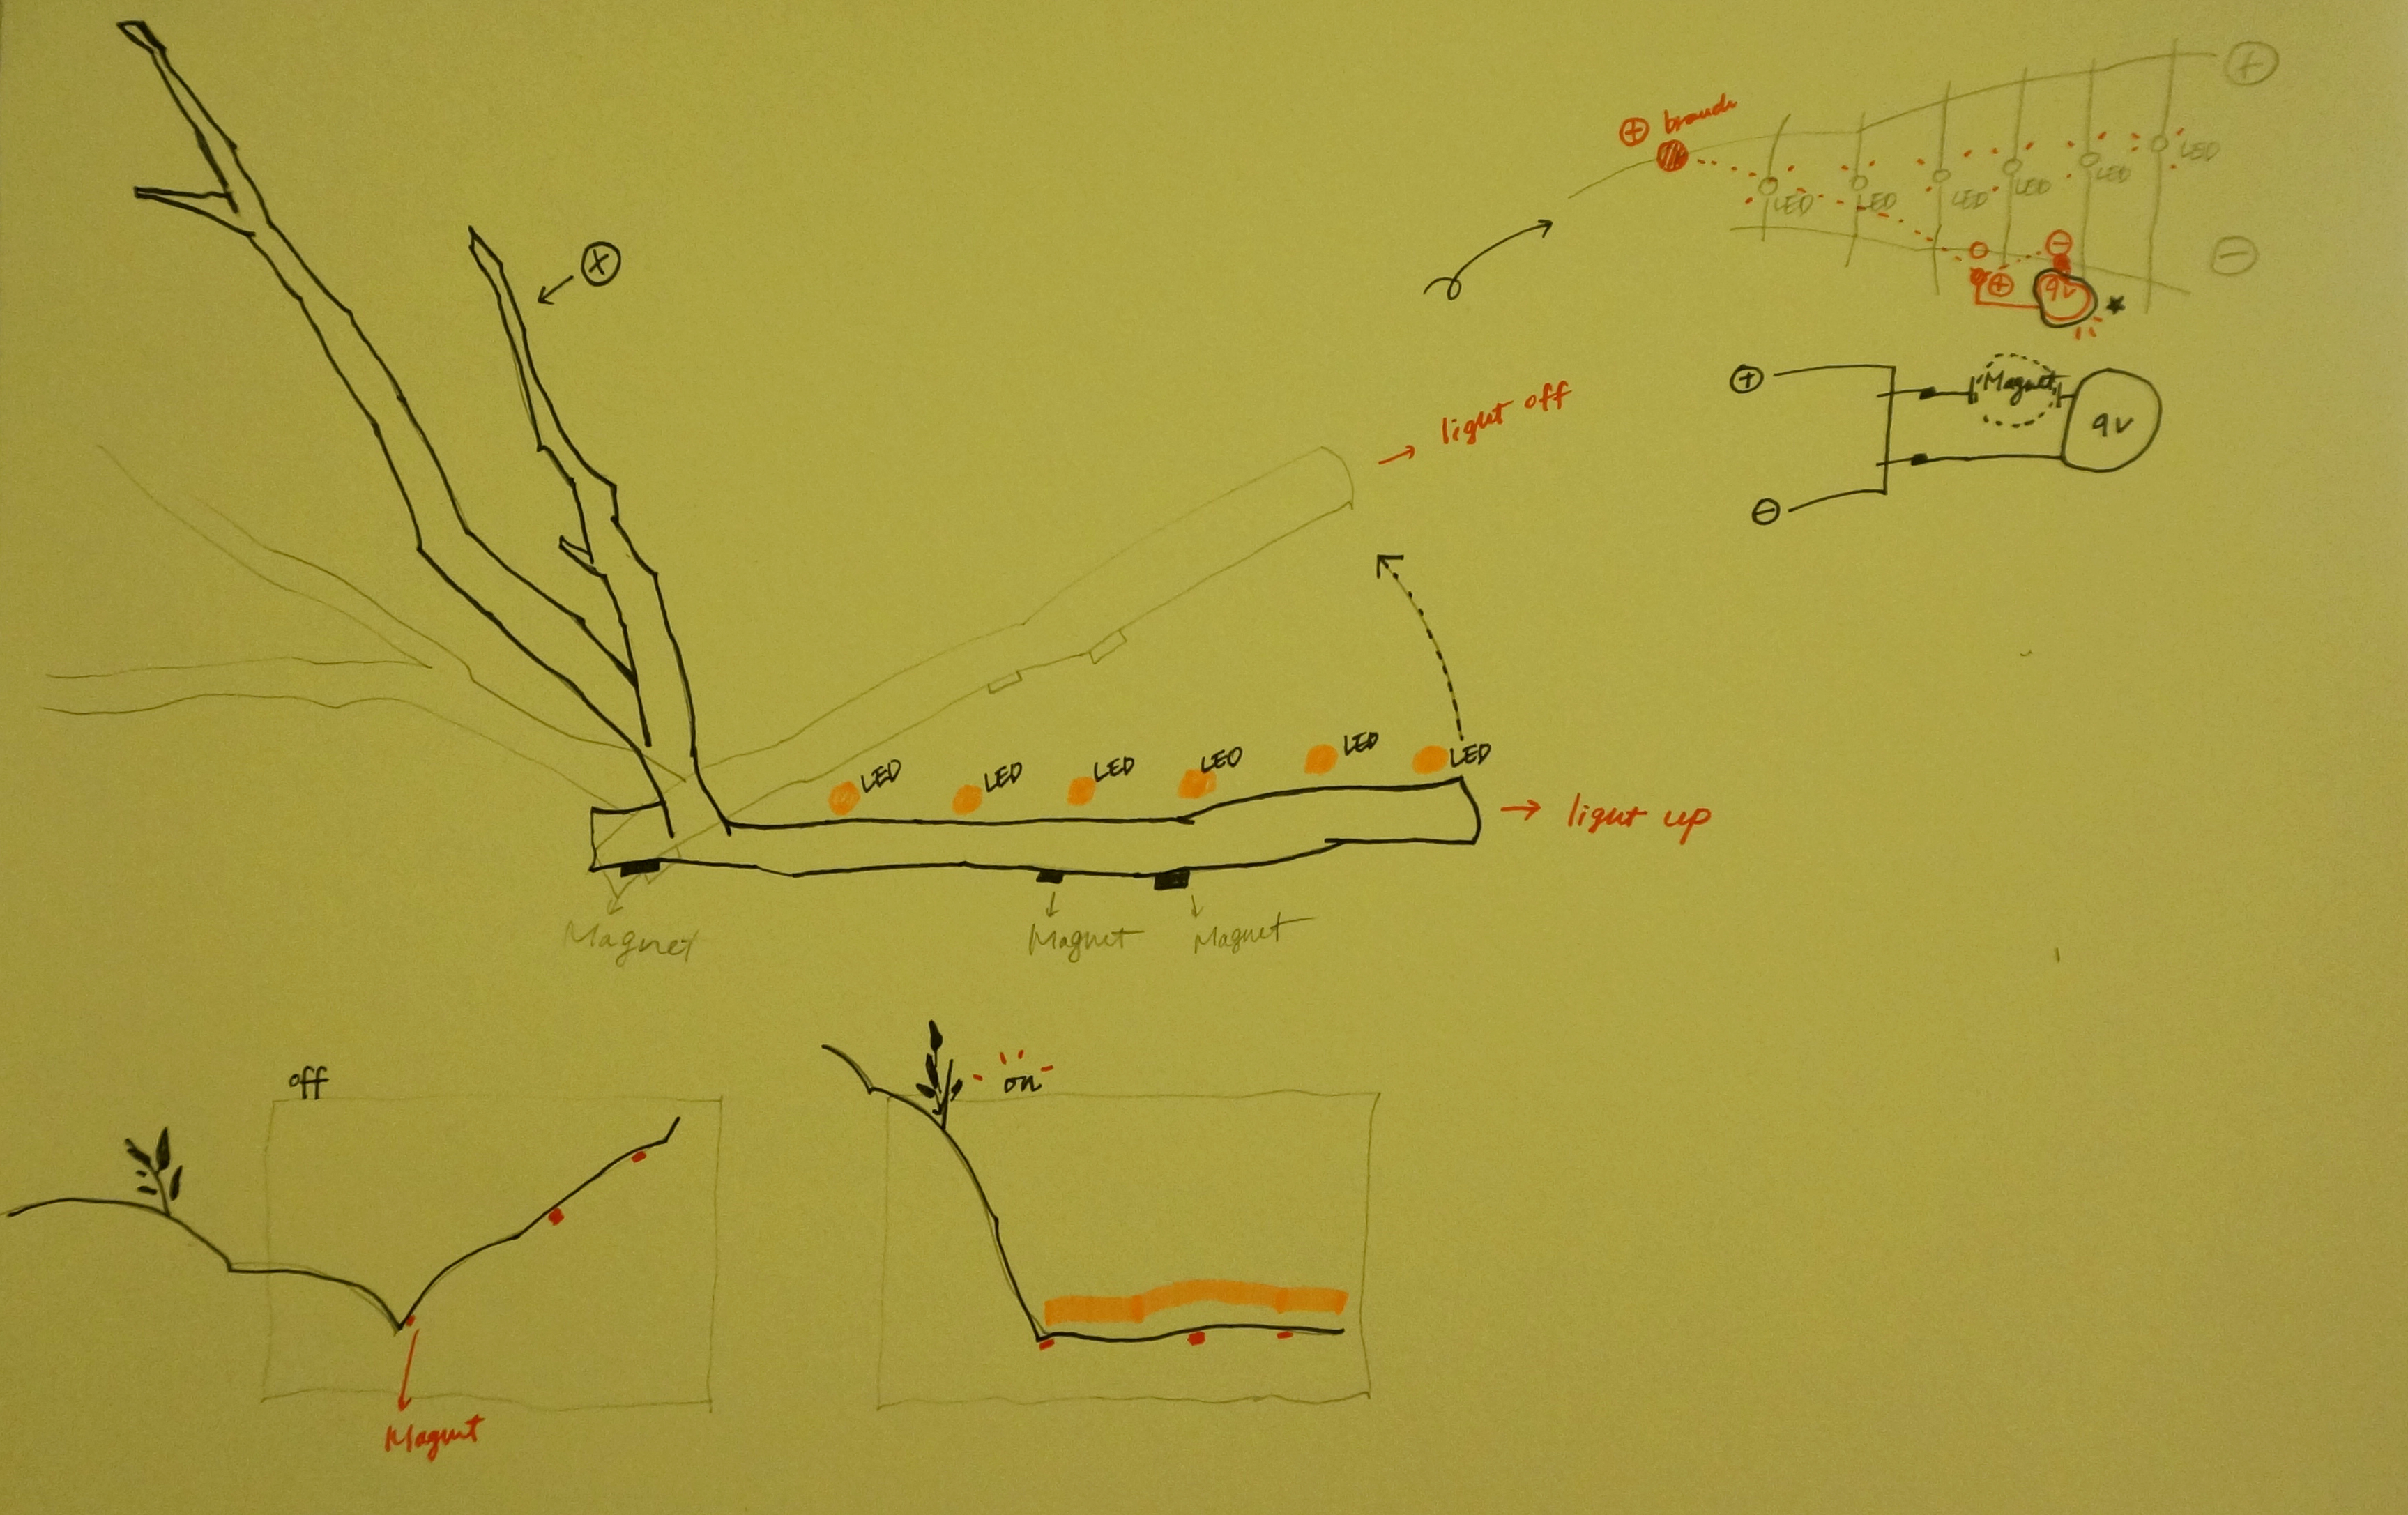 Picture of Sketch Circuits on Paper for Prototype.